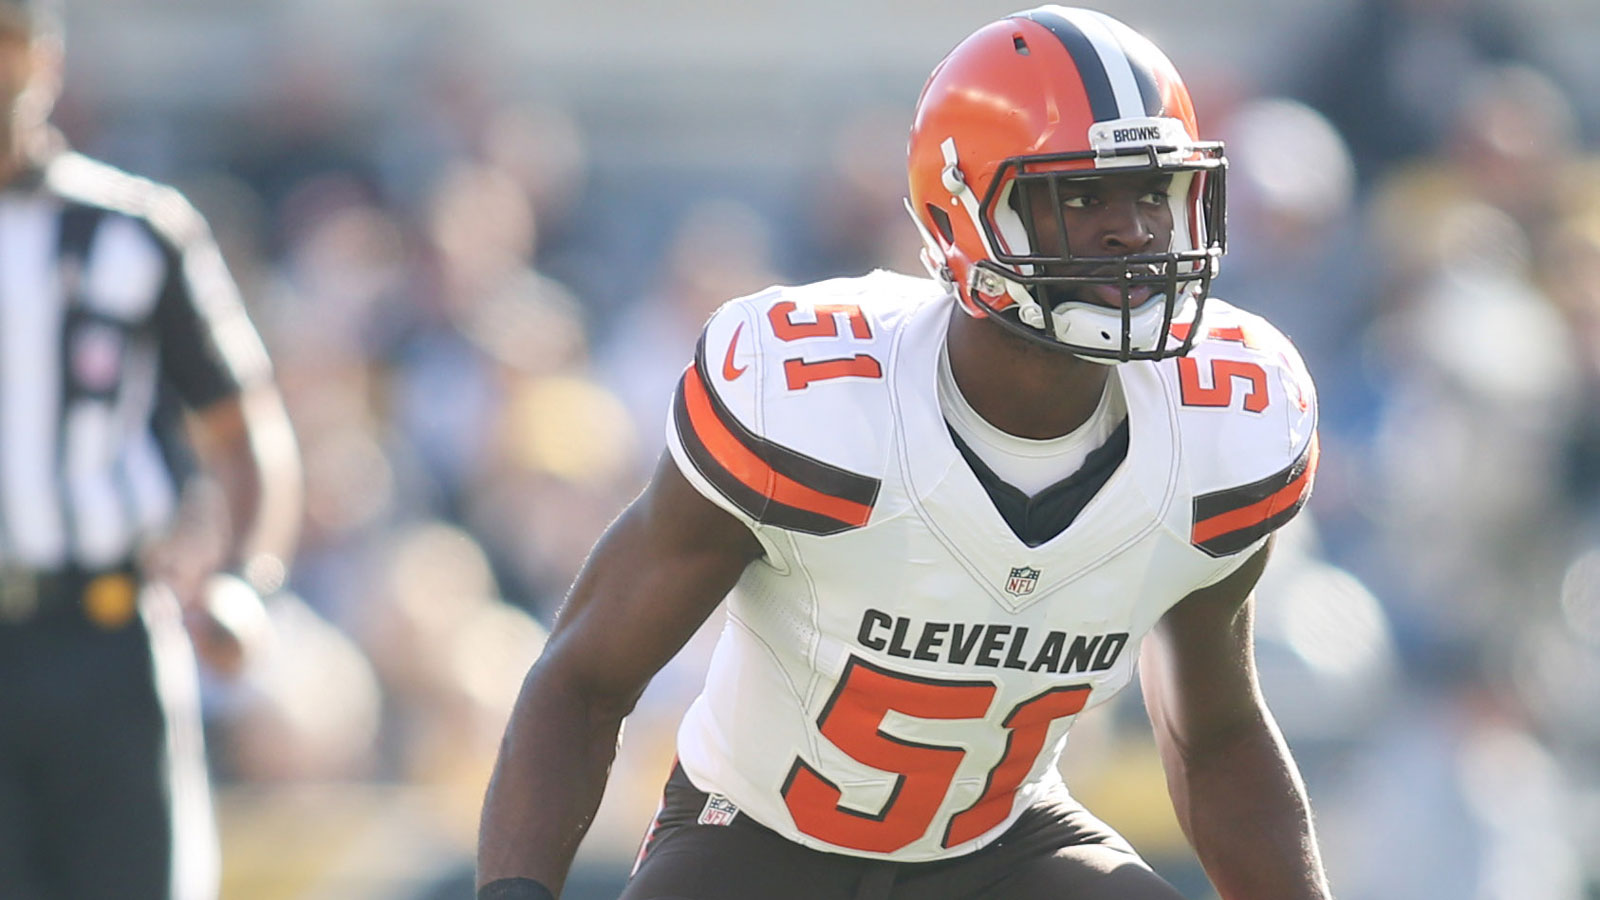 Browns trade former first round pick Mingo to Patriots